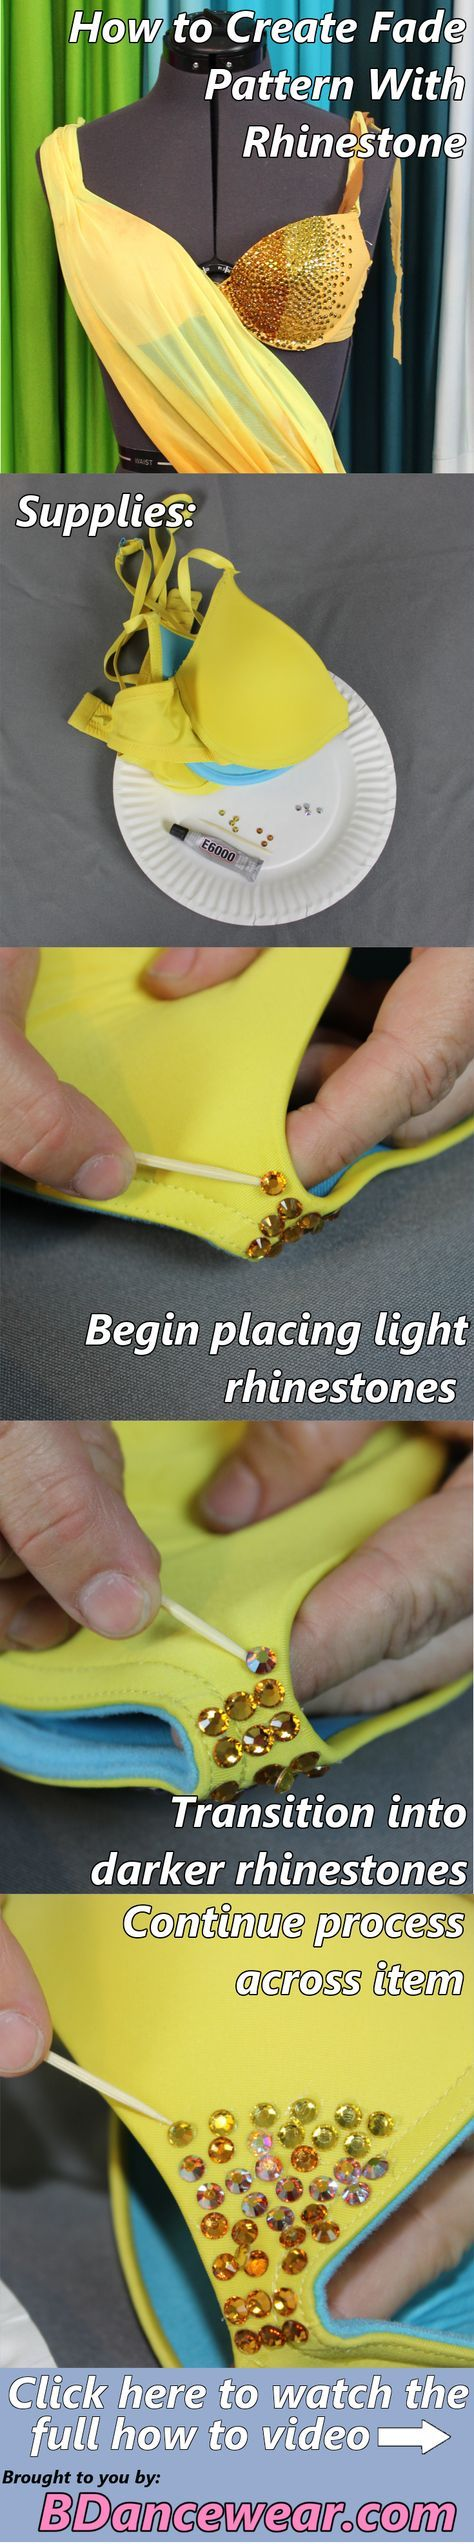 How to create fade pattern with rhinestone for a dance costume.